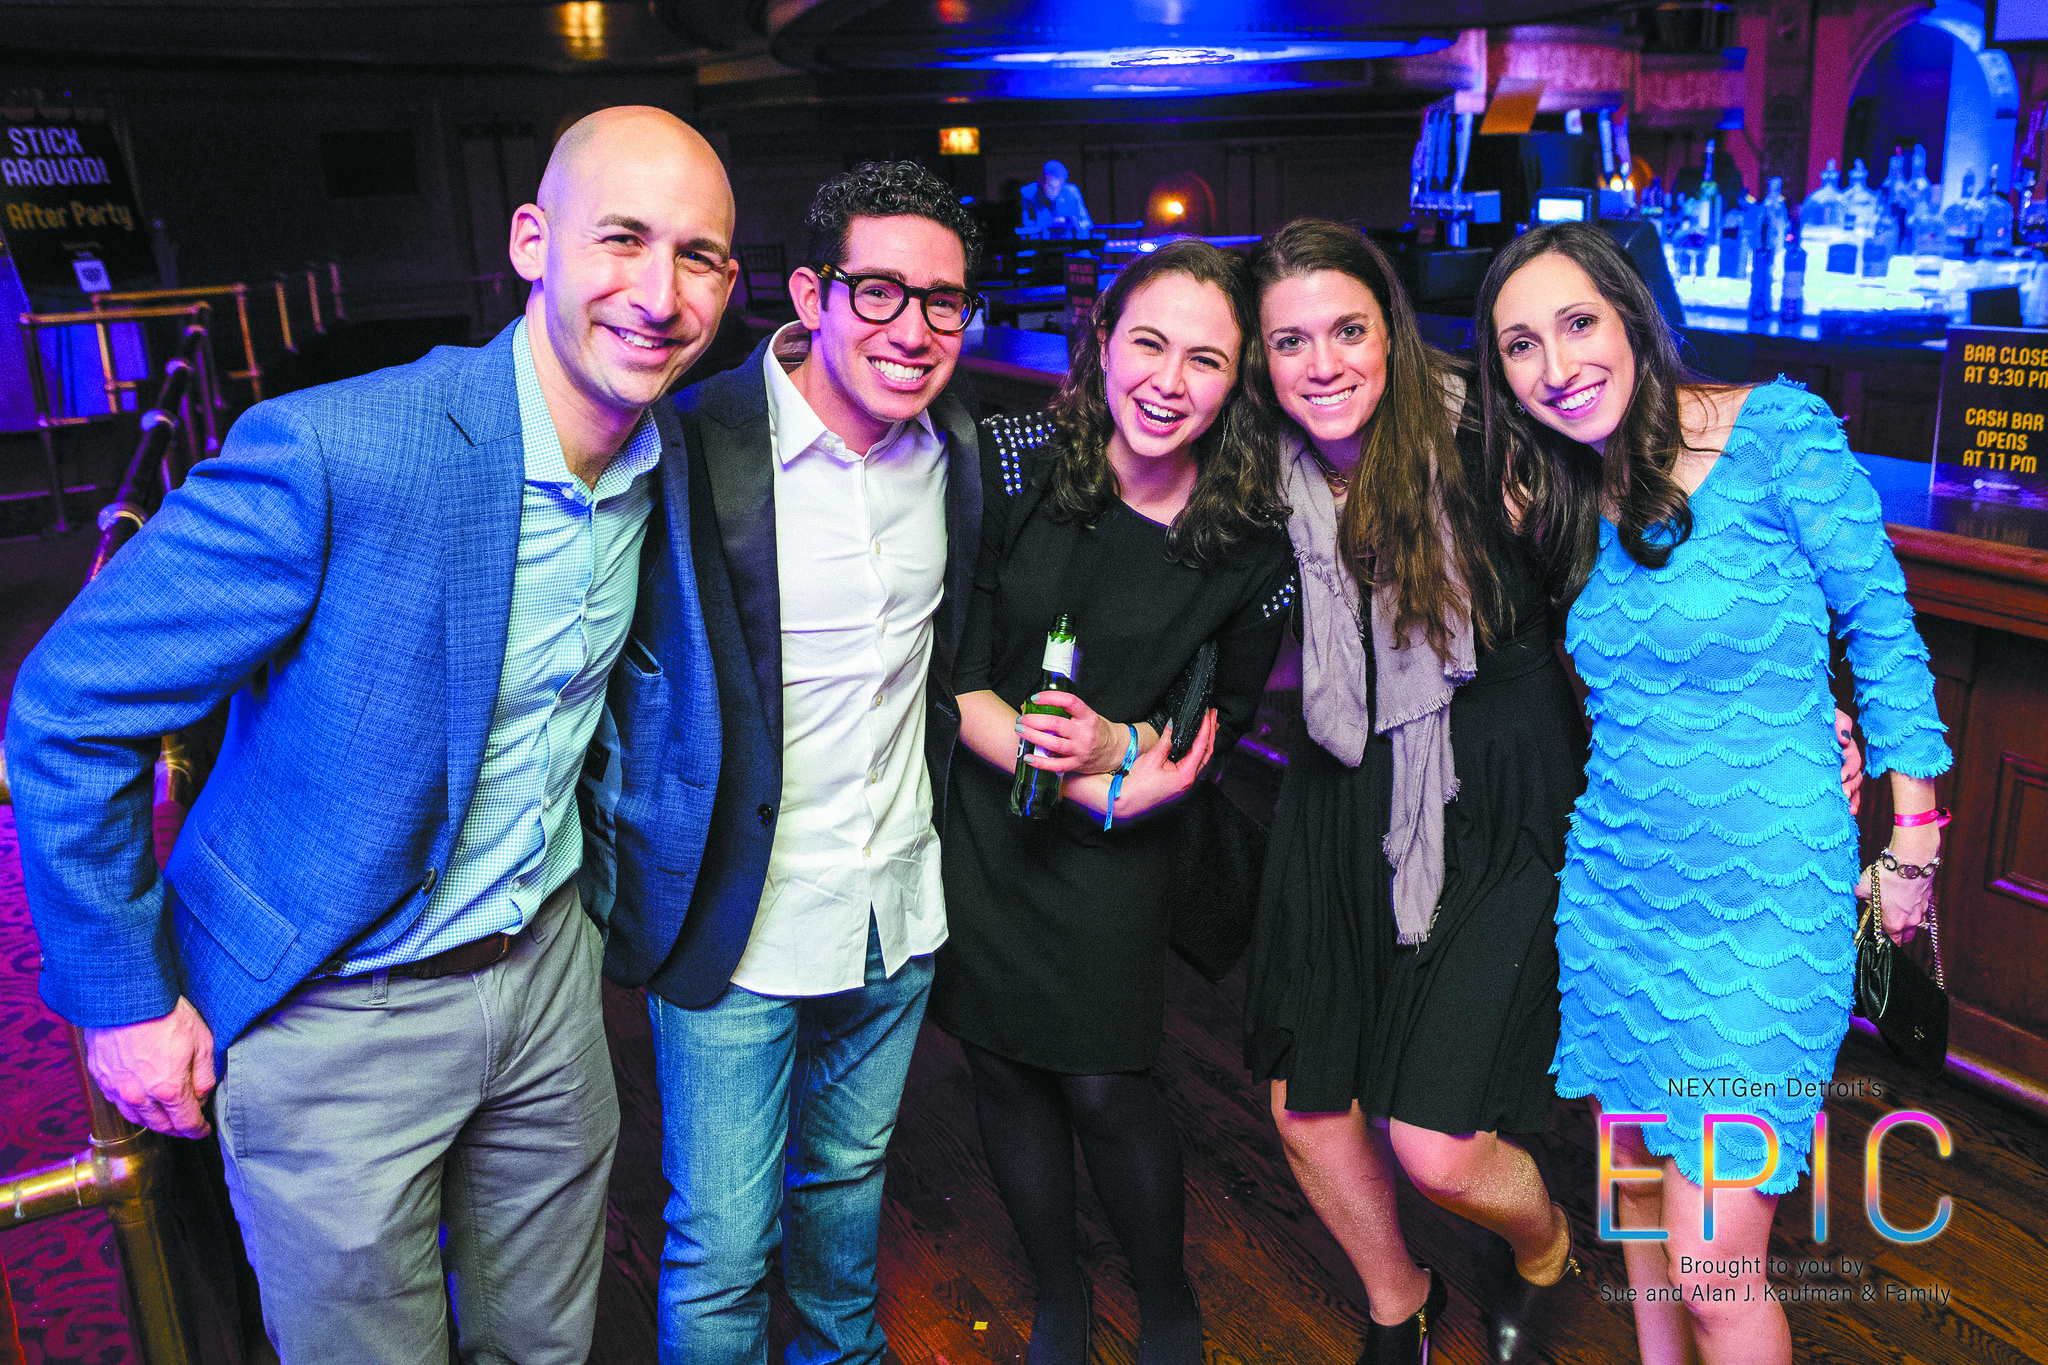 Adam Block, Joshua Goldberg, Lauren Hoffman, Jessica Katz and Ilana Block, NEXTGen Detroit president, at the group's EPIC event March 3 at The Fillmore Downtown. The event drew 550 young adults and raised a record $305,000 for Federation's Annual Campaign.